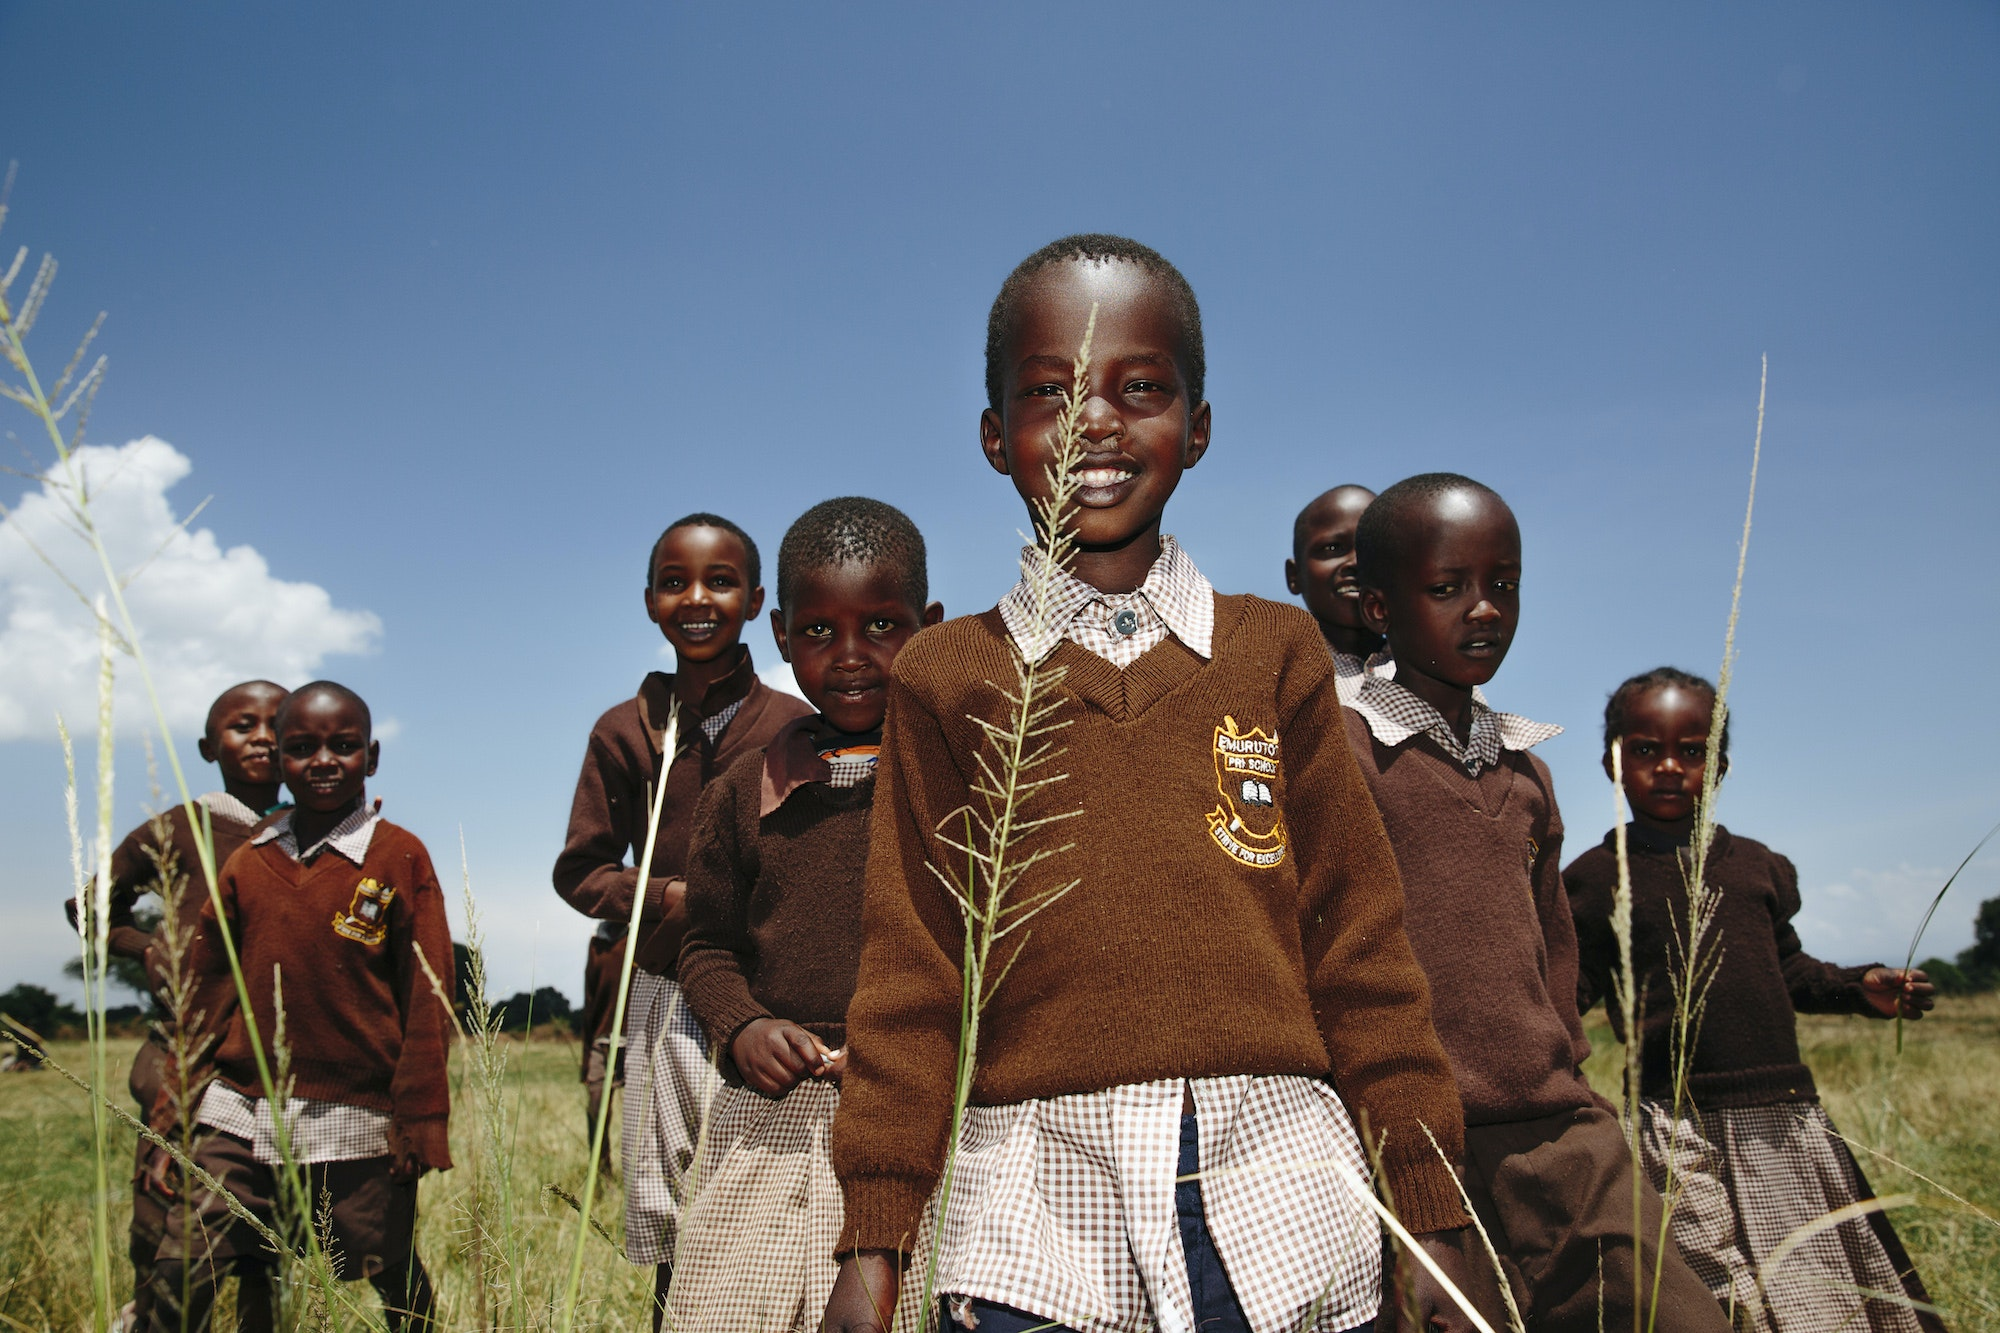 Children from a local school supported by Angama's foundation pose for a photo.